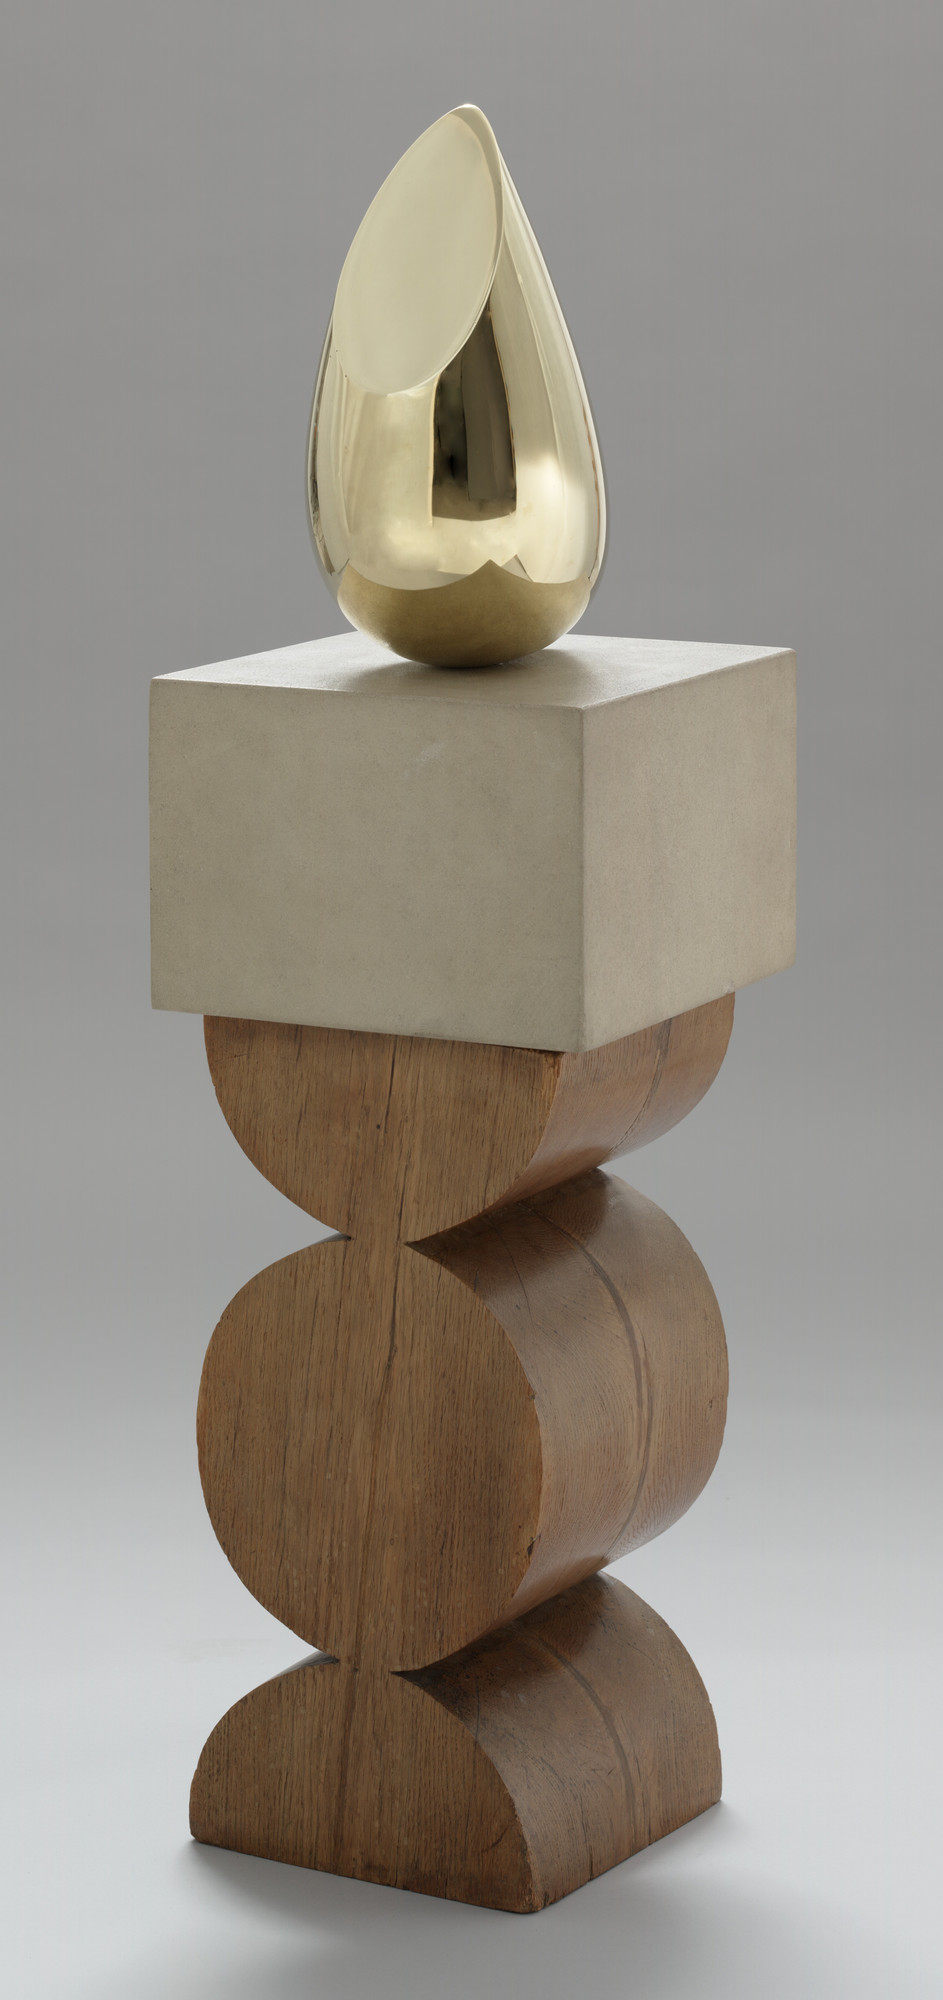 Constantin Brancusi. Young Bird. Paris 1928